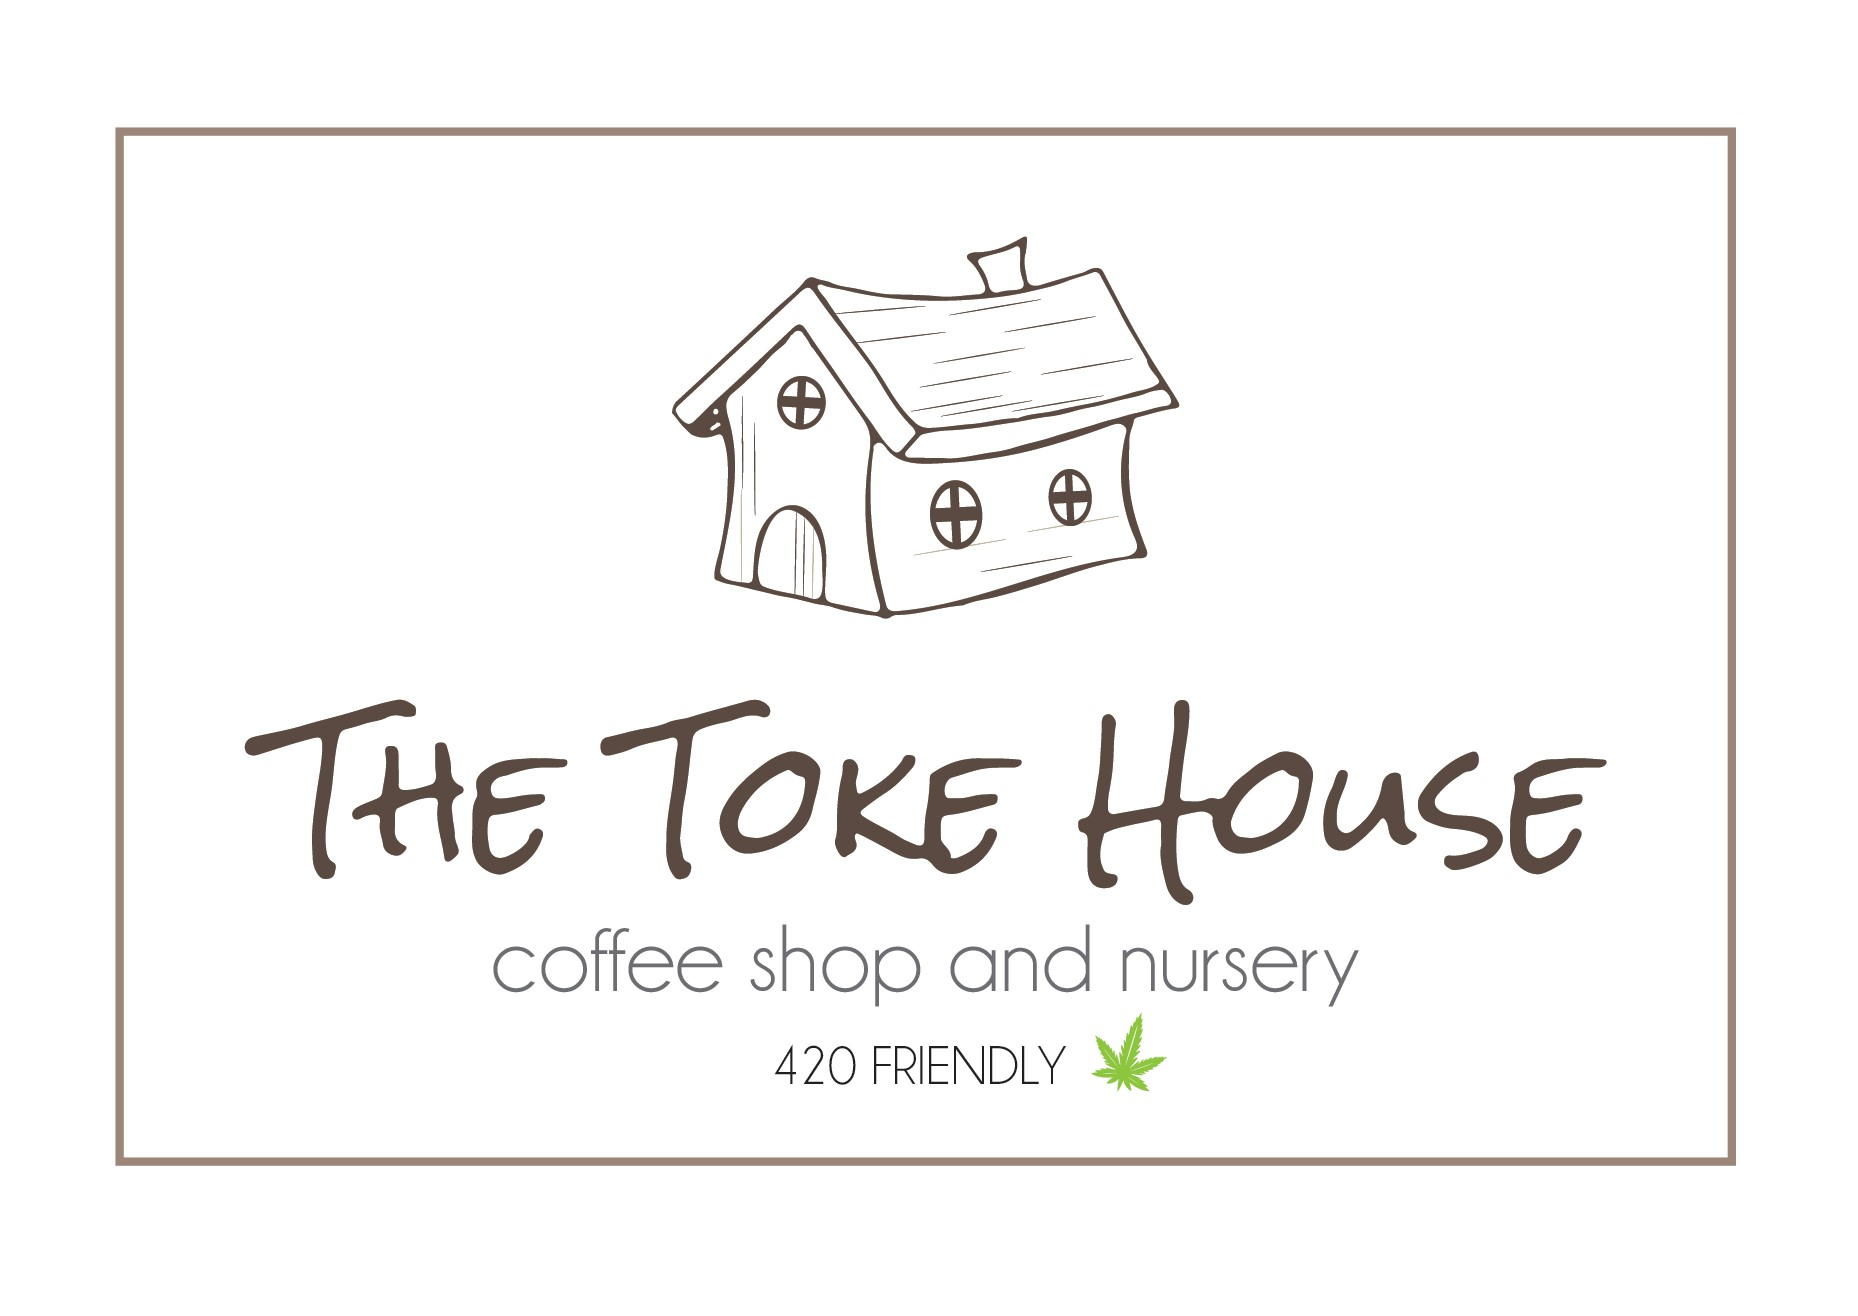 Plant Matter Distributor | The Toke house